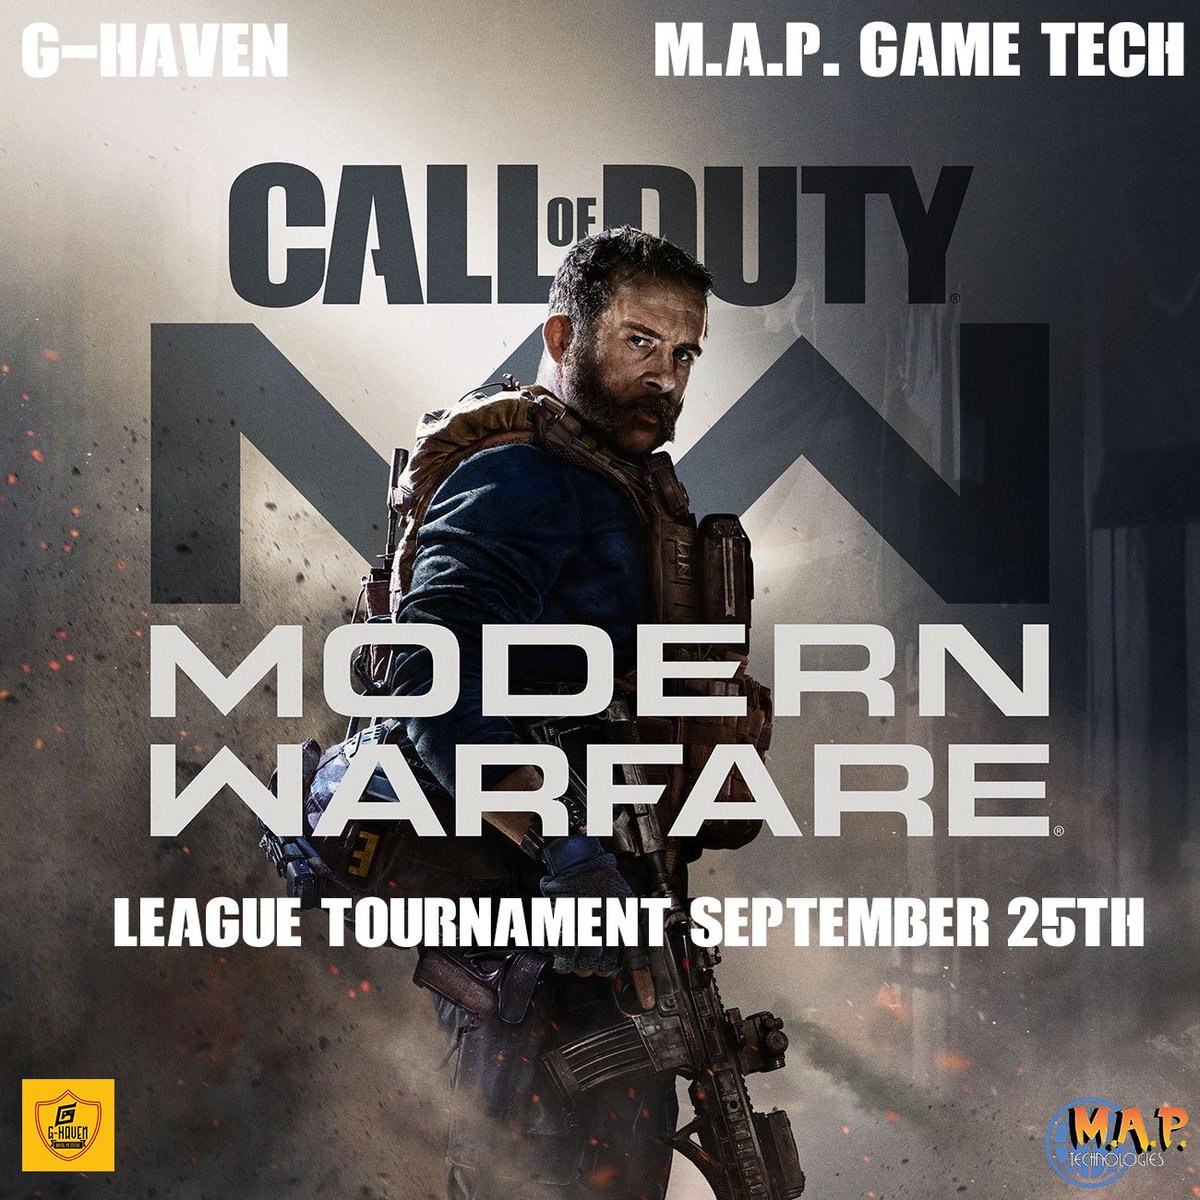 You think you can take on our pro team in COD Warzone?! Come at us and Bring Yo Sticks!!! DM us to challenge the team #BringYoSticks #gaming #GhavenEsports #gamer #twitchstreamer #xbox #Monster #Activision #RedBull #ElectronicArts #Gamestop #Honda #cod #CoD2020 #CoDMW https://t.co/78dgWy9LiJ